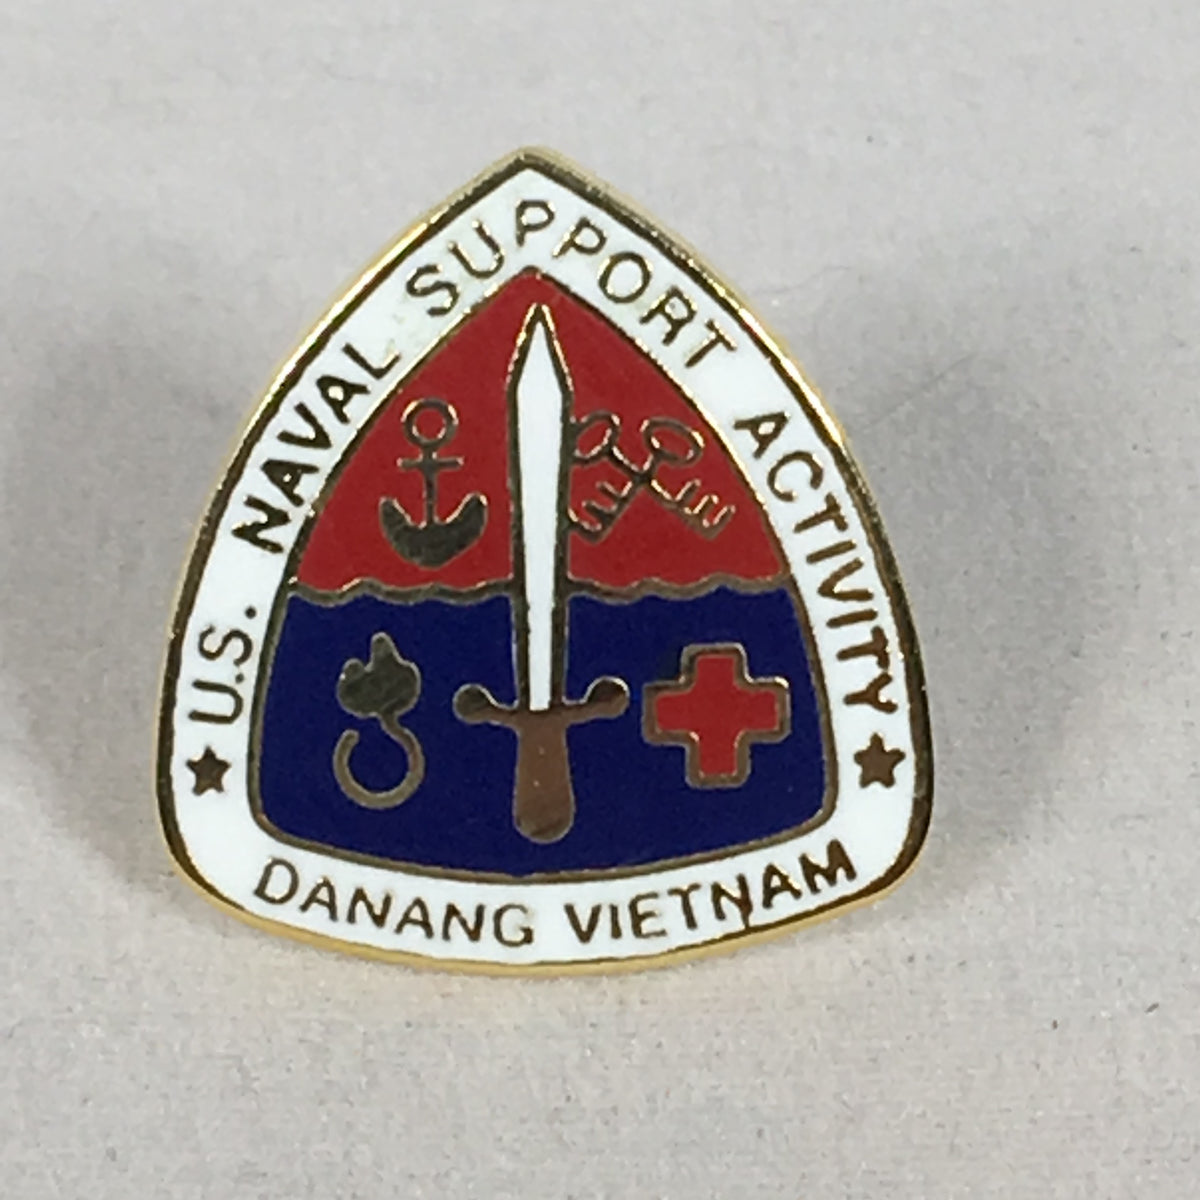 Naval Support Activity Denang Vietnam Pin